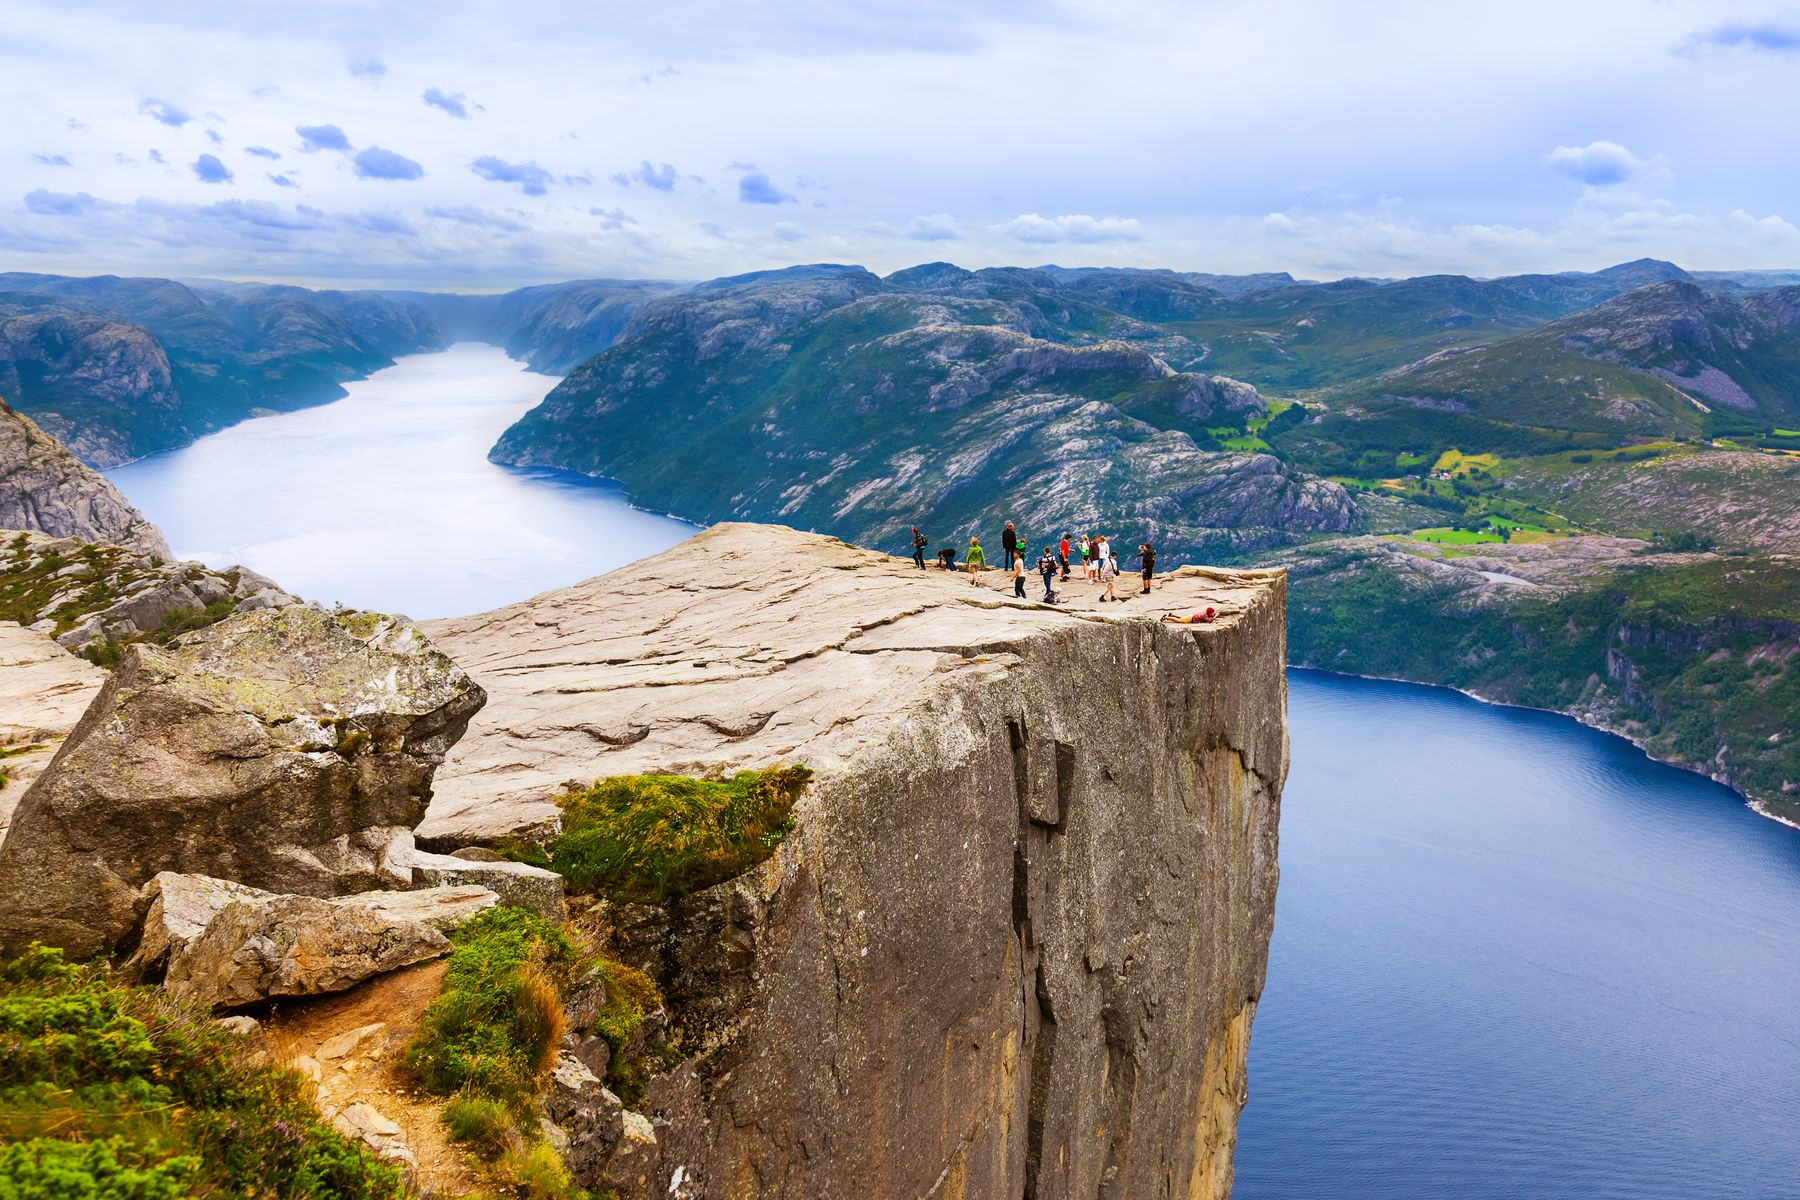 epic landscape of Norway fjord ecotourism destination